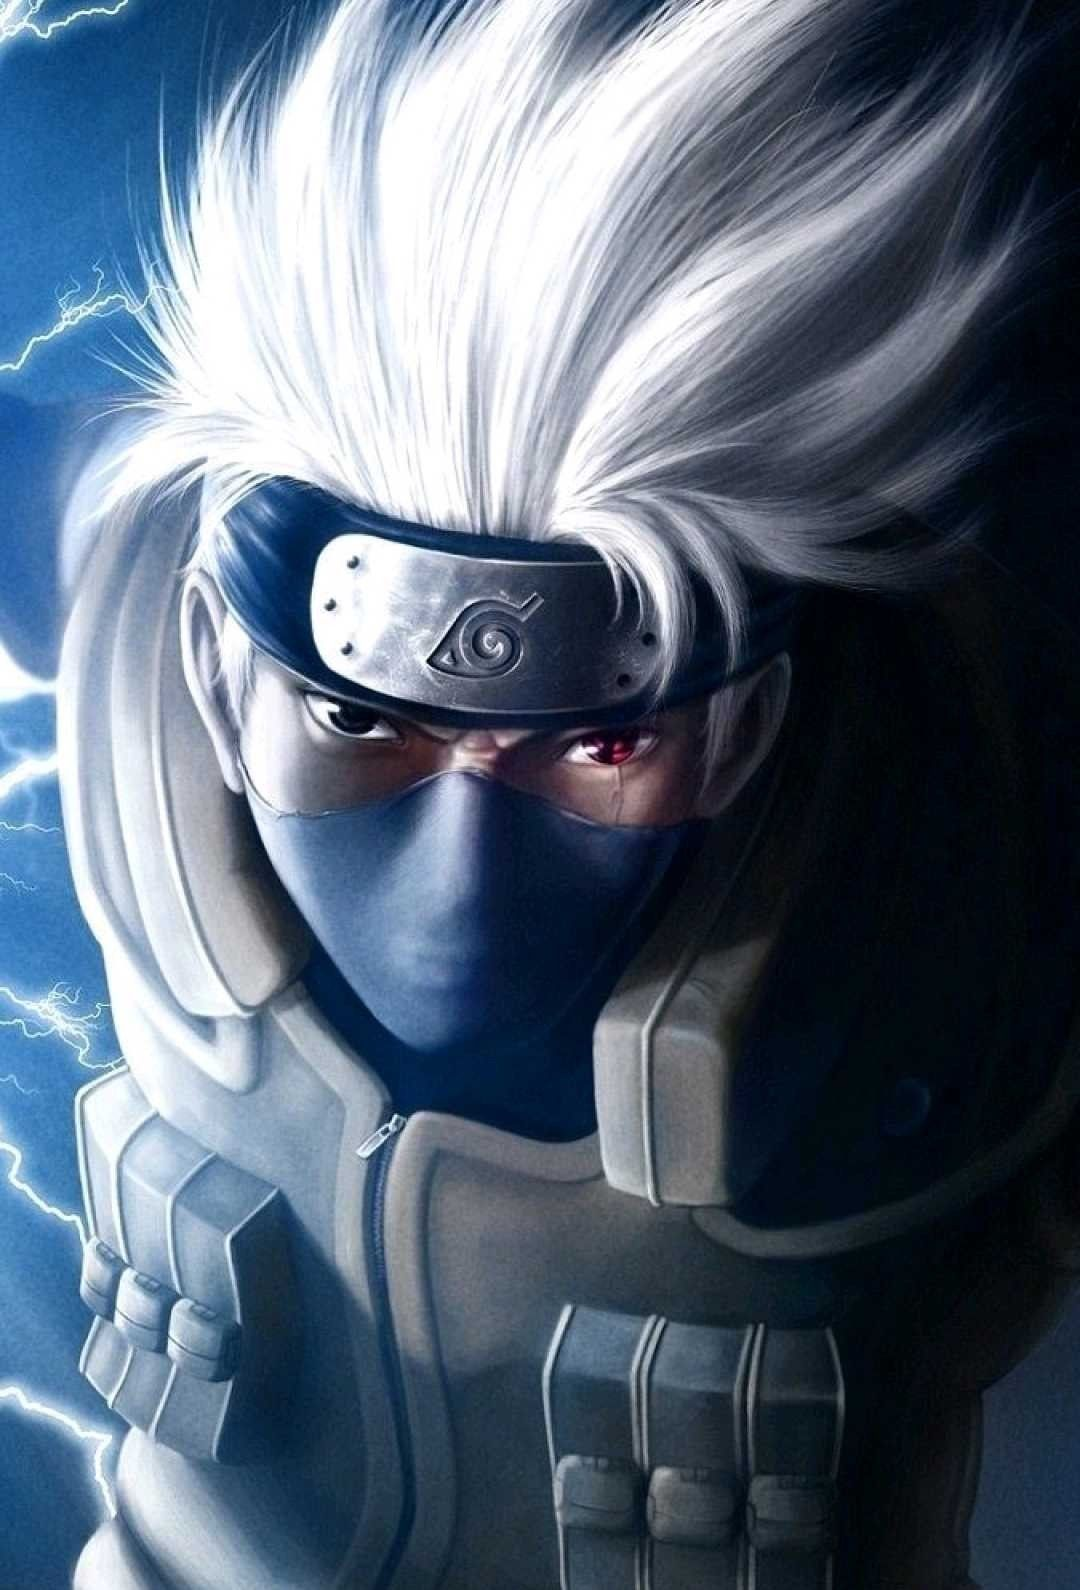 Pin by Zubayr Allie on Series Naruto wallpaper iphone